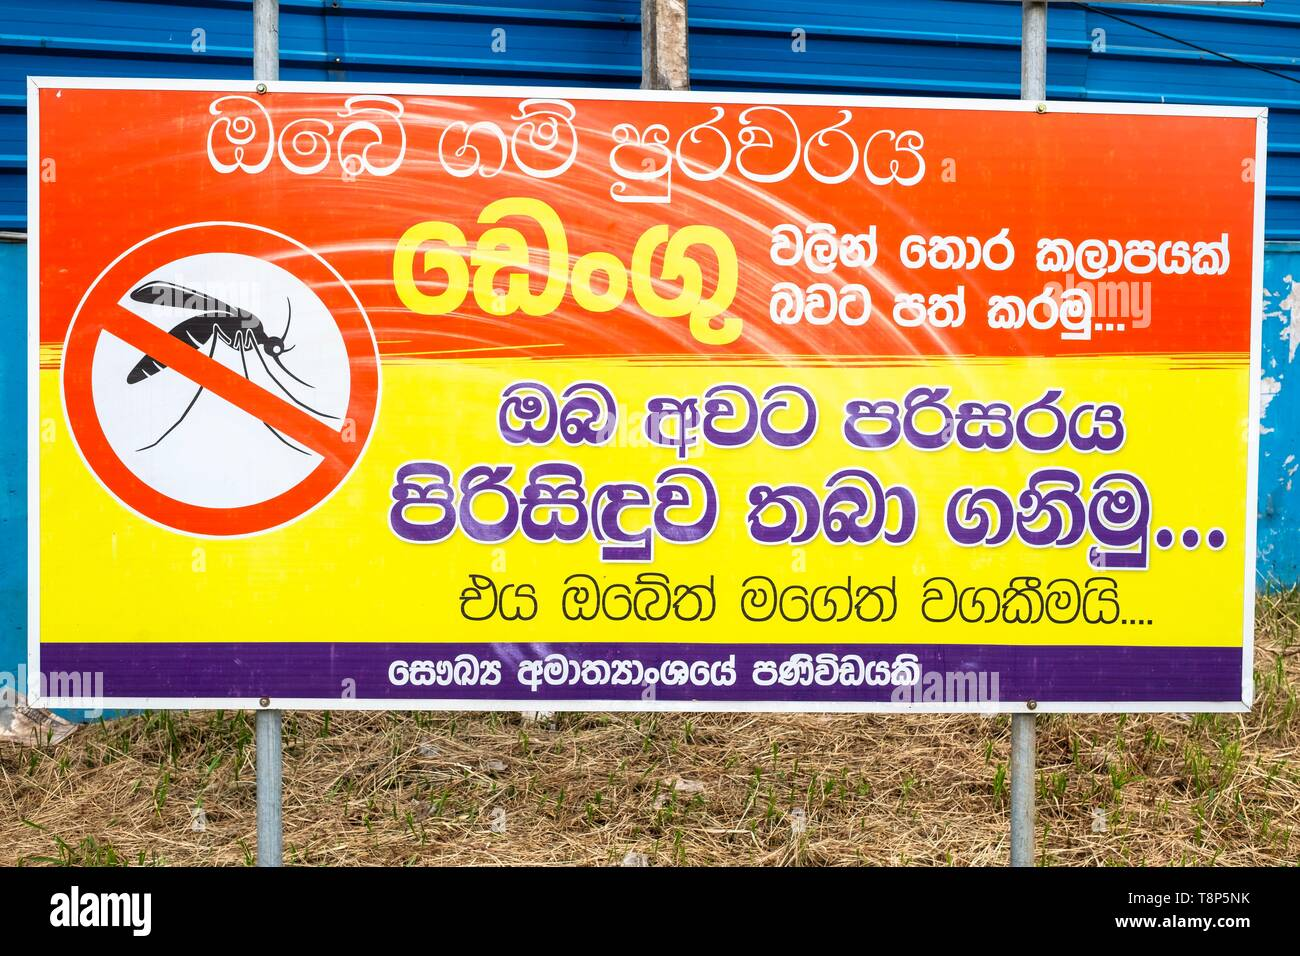 Sri Lanka, Western province, Negombo, prevention against mosquitoes - Stock Image